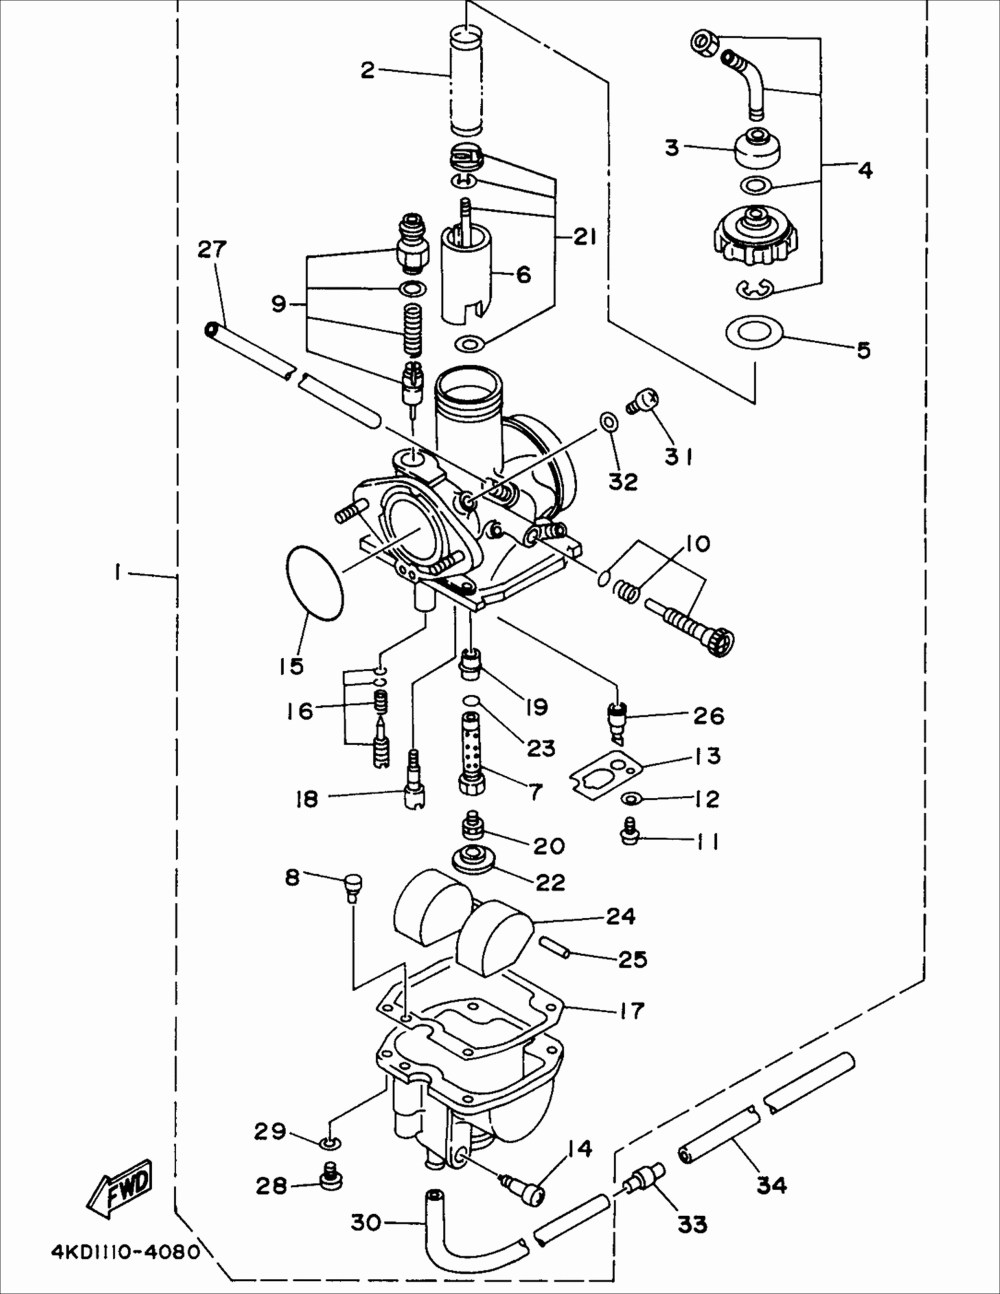 medium resolution of mitsubishi 30 engine diagram wiring diagram name in addition engine turbo system on 3 8 mitsubishi v6 engine diagram